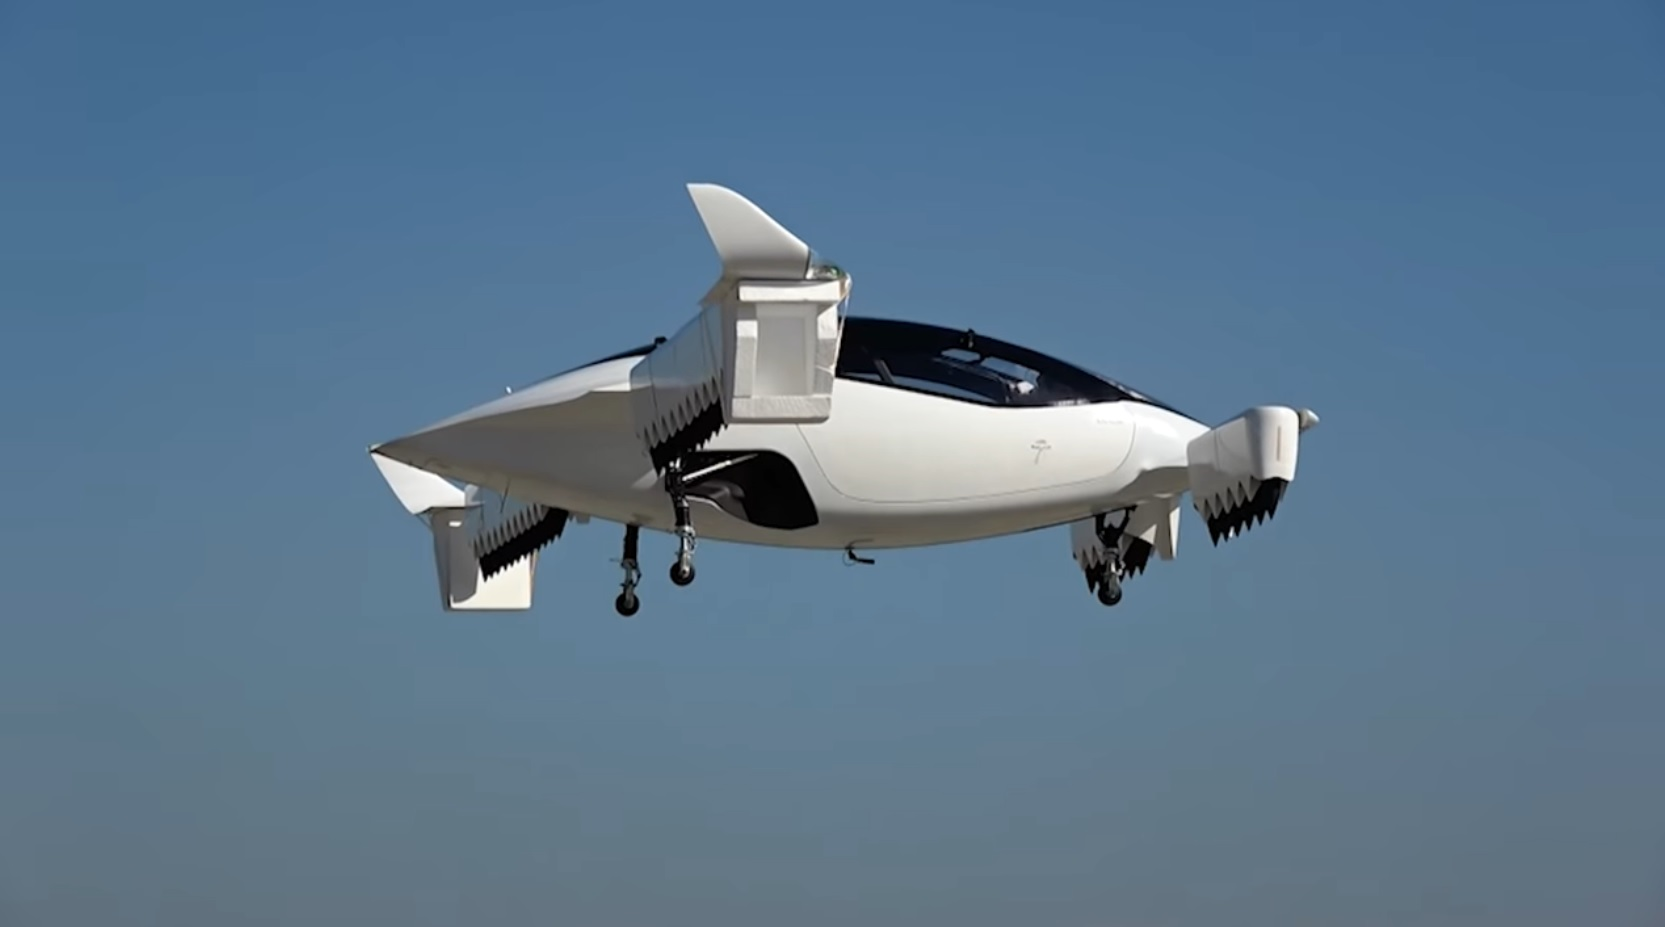 Lilium Flies Five-Seat Prototype